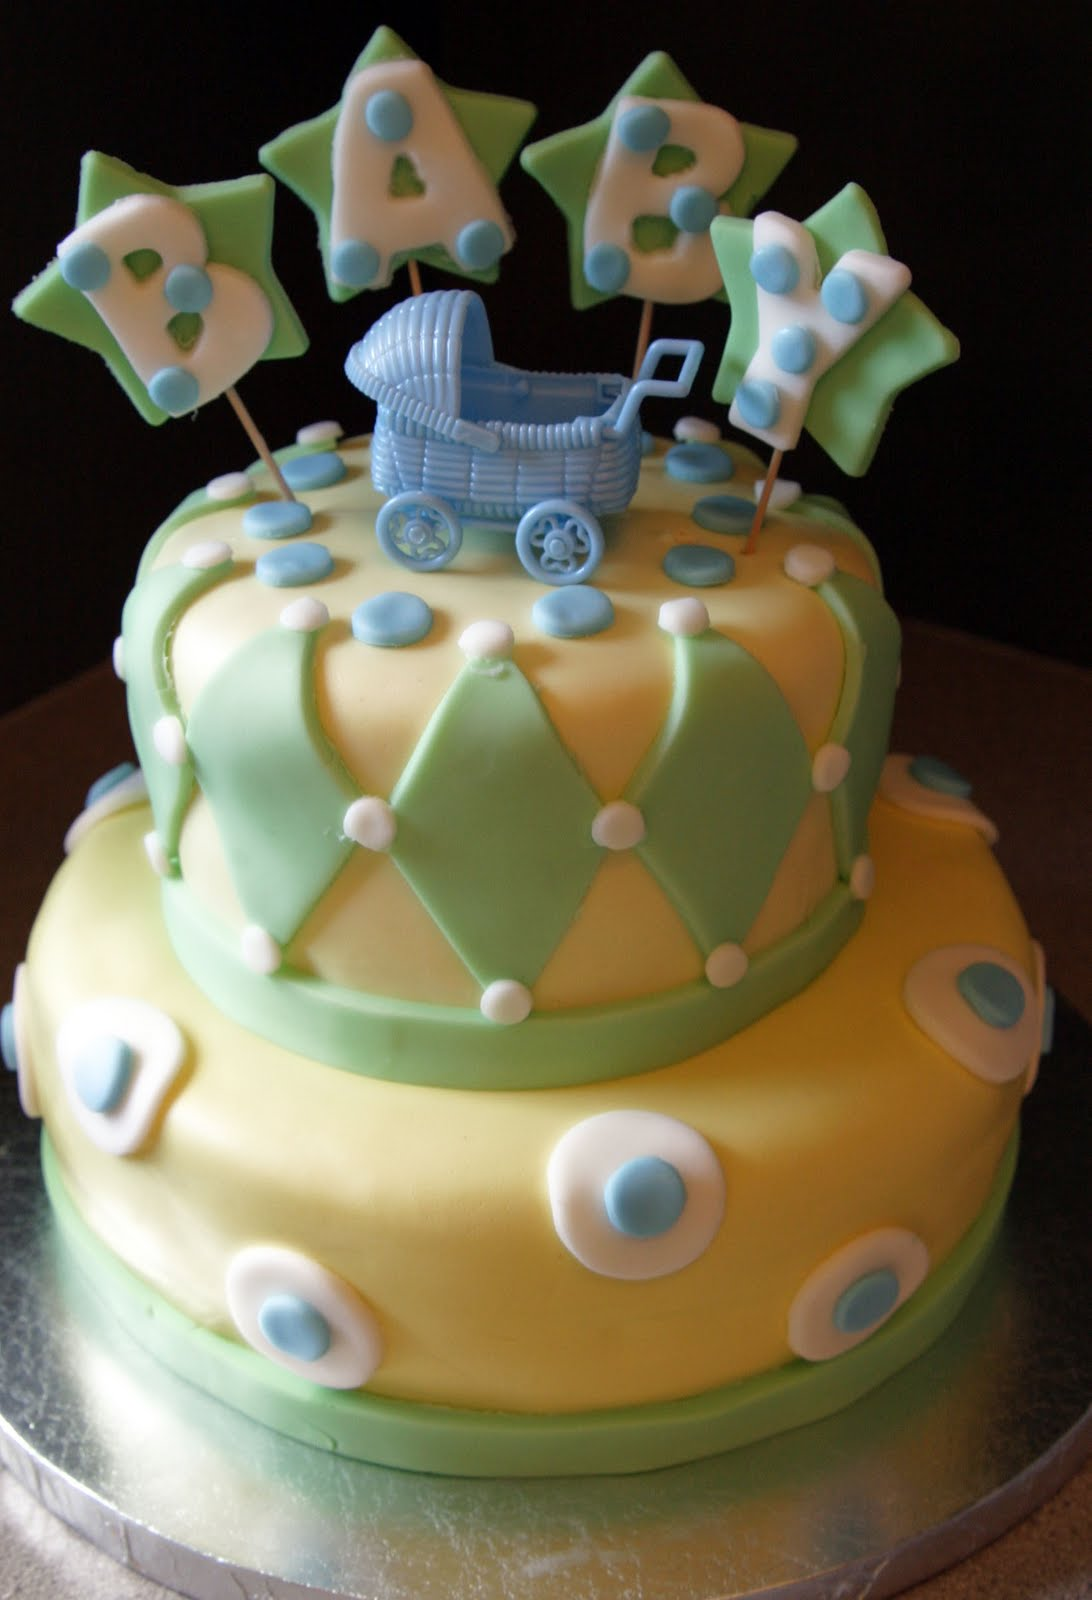 Tastefully Done Baby Boy Green And Yellow Cake Serves 30